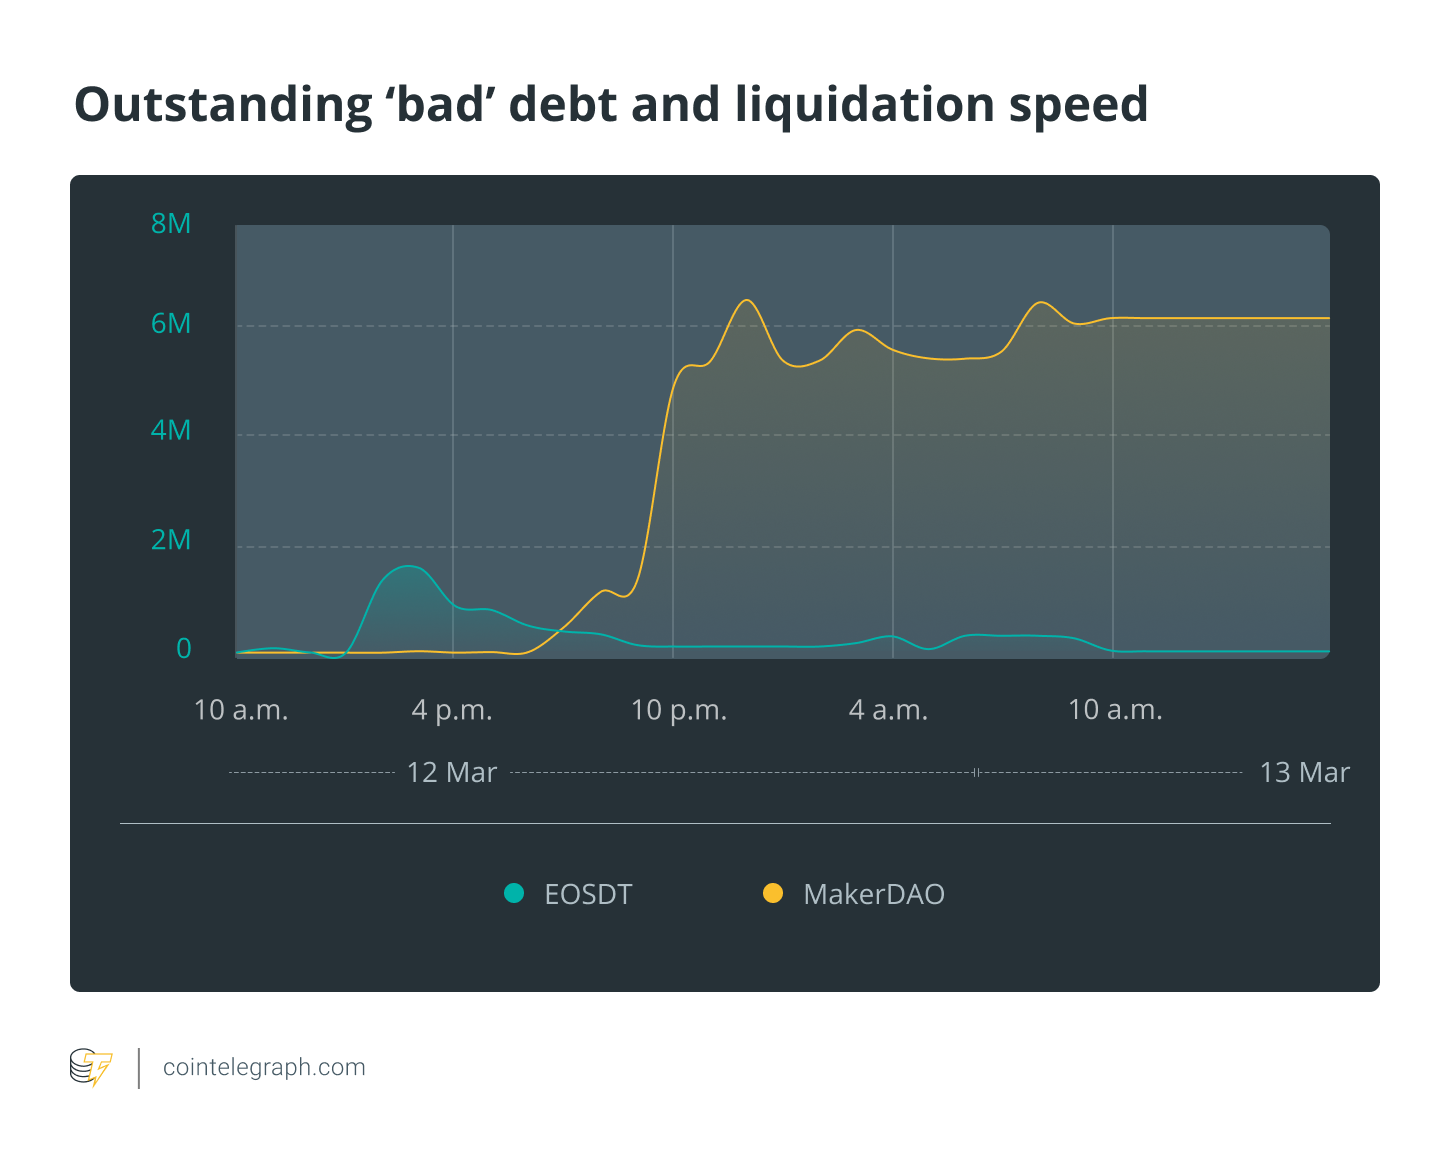 Outstanding bad debt and liquidation speed